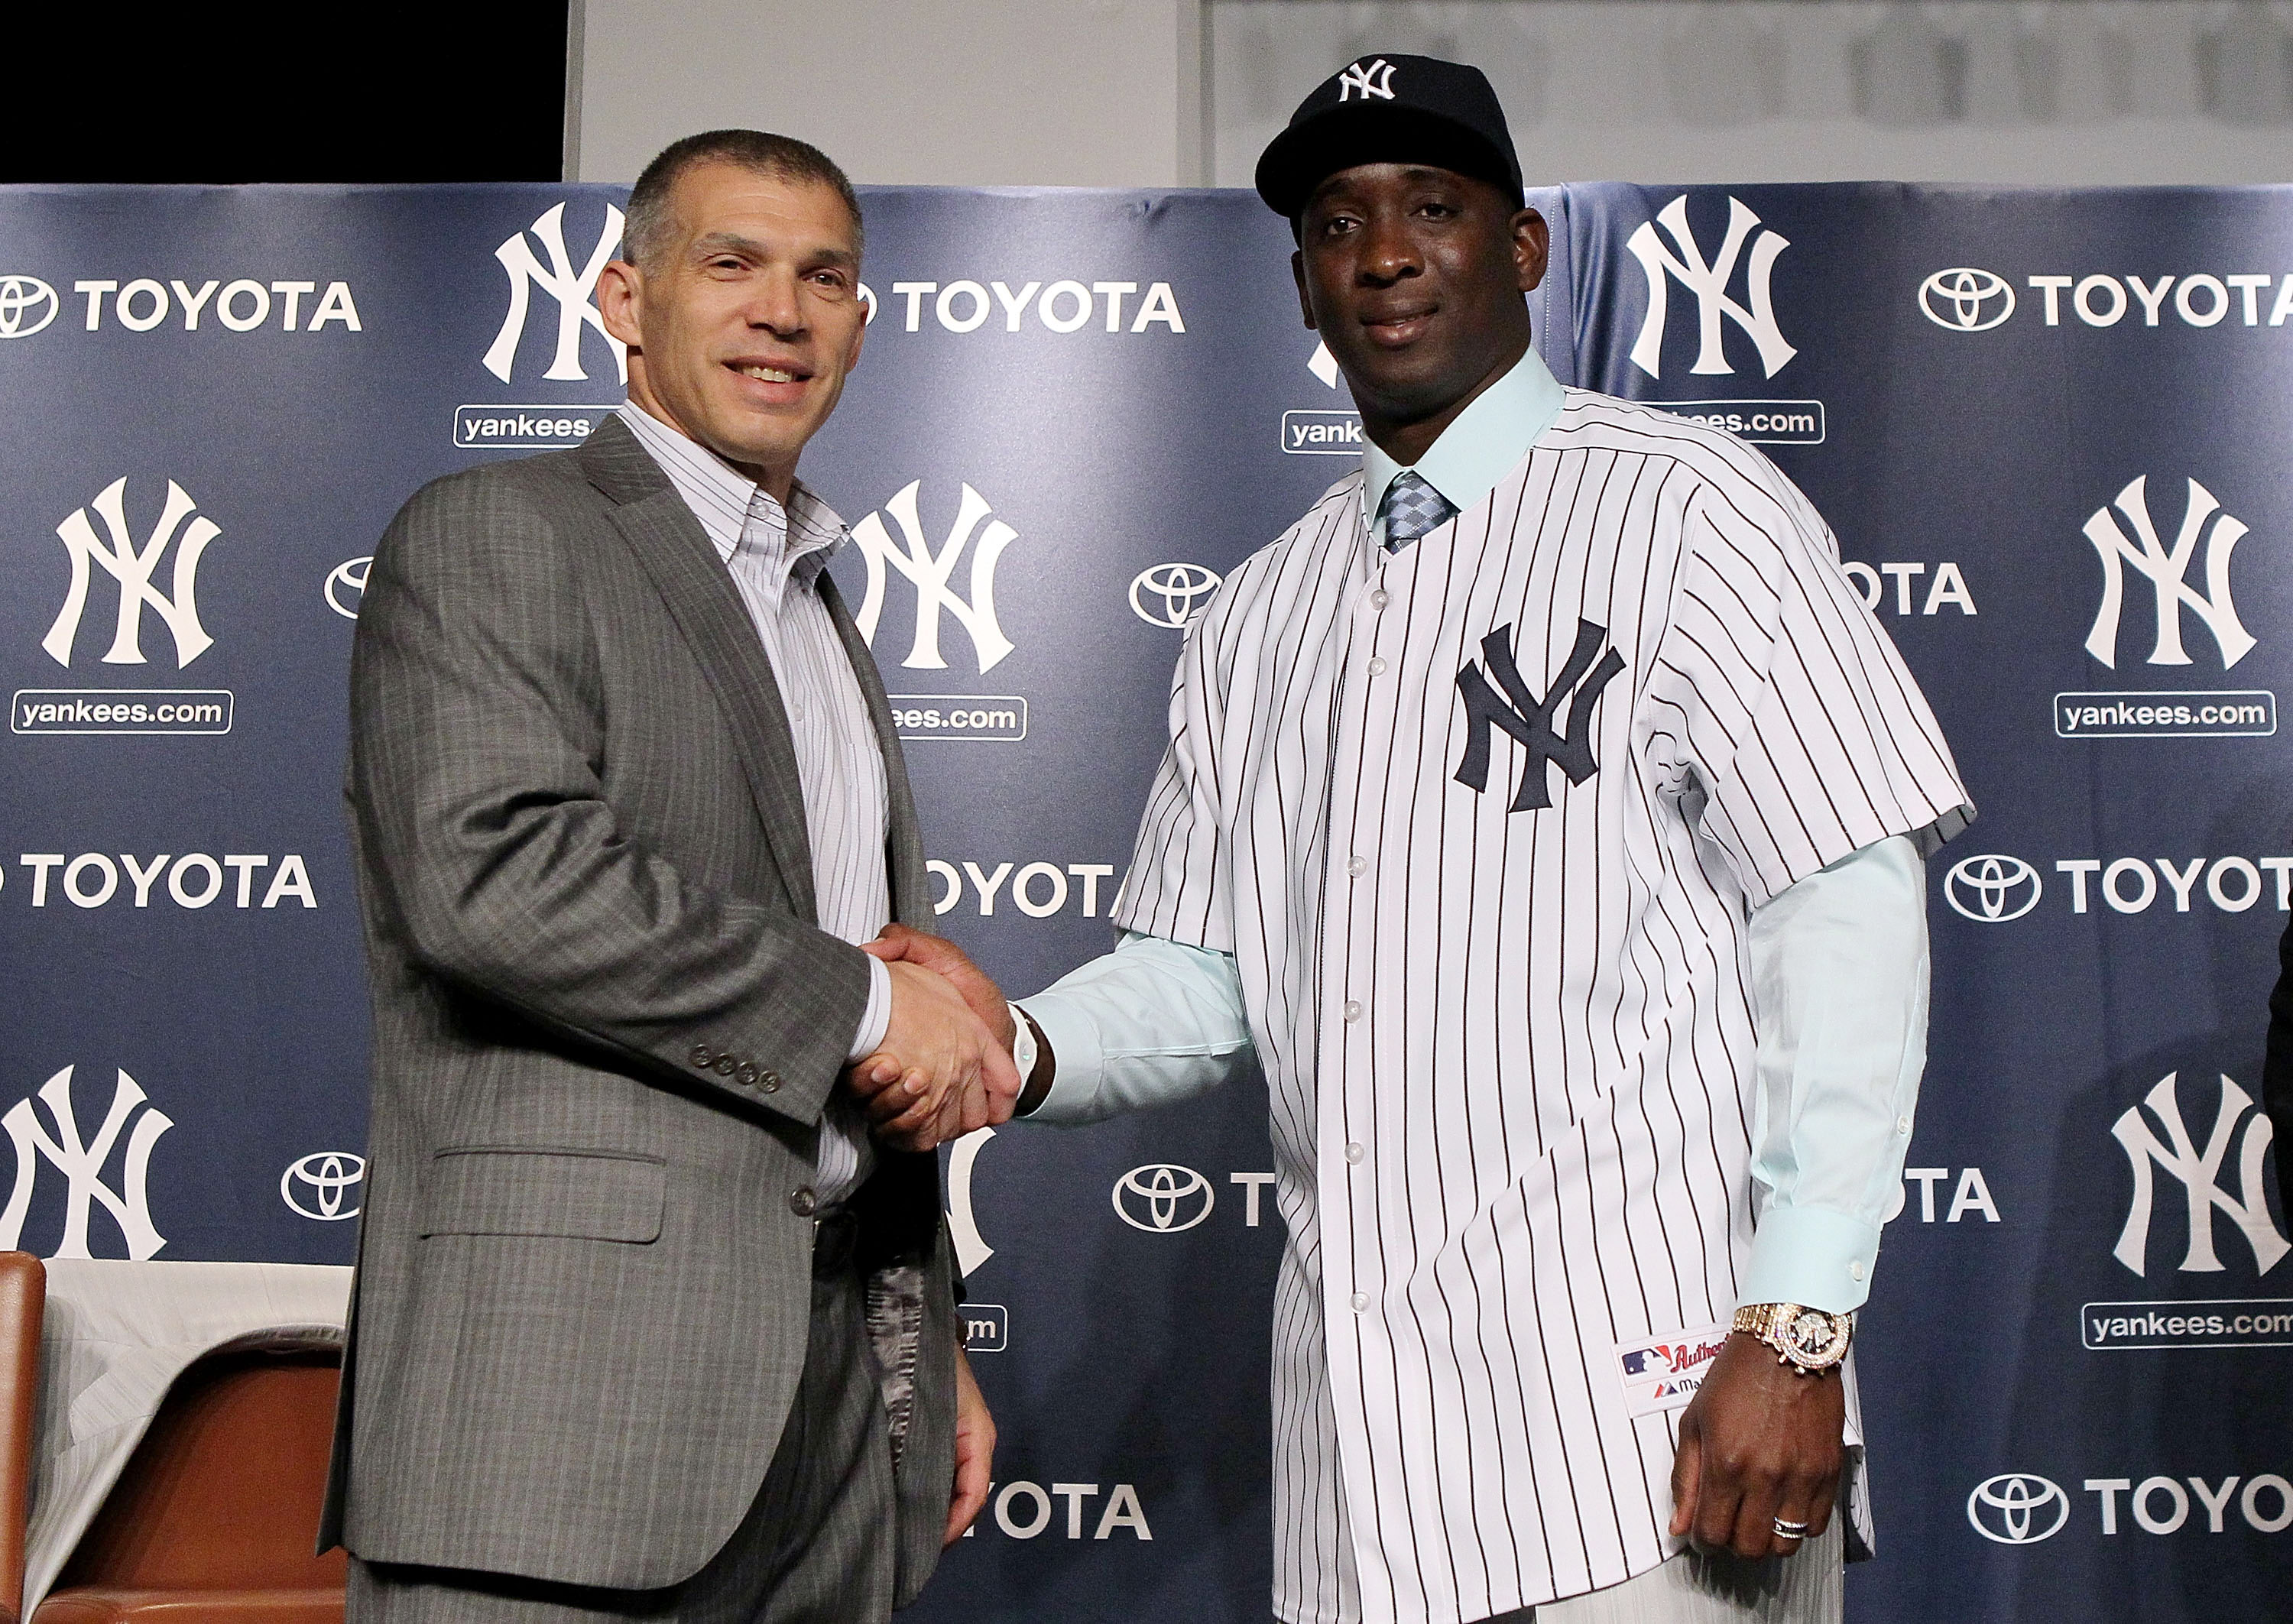 NEW YORK, NY - JANUARY 19:  Rafael Sorianoof the New York Yankees shakes hands with manager Joe Girardi during his introduction press conference on January 19, 2011 at Yankee Stadium in the Bronx borough of New York City. The Yankees signed Soriano to a t